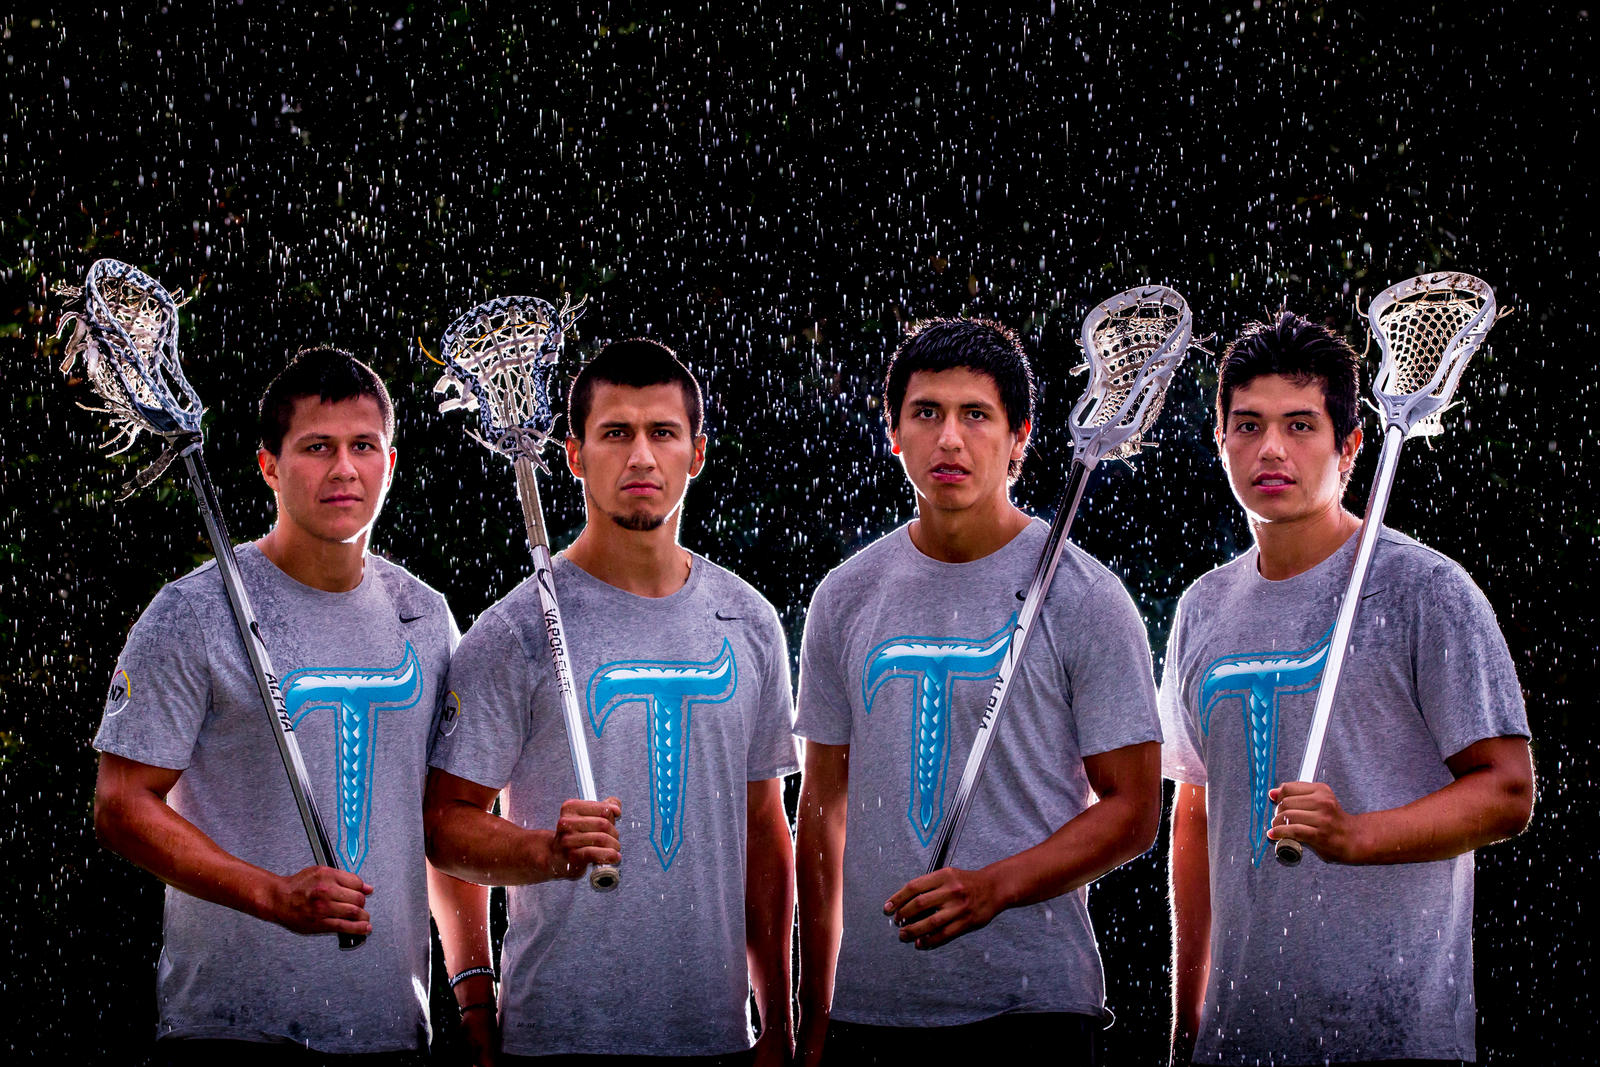 Thompson%20 Brothers%20 Lacrosse%20 Small 292[1]